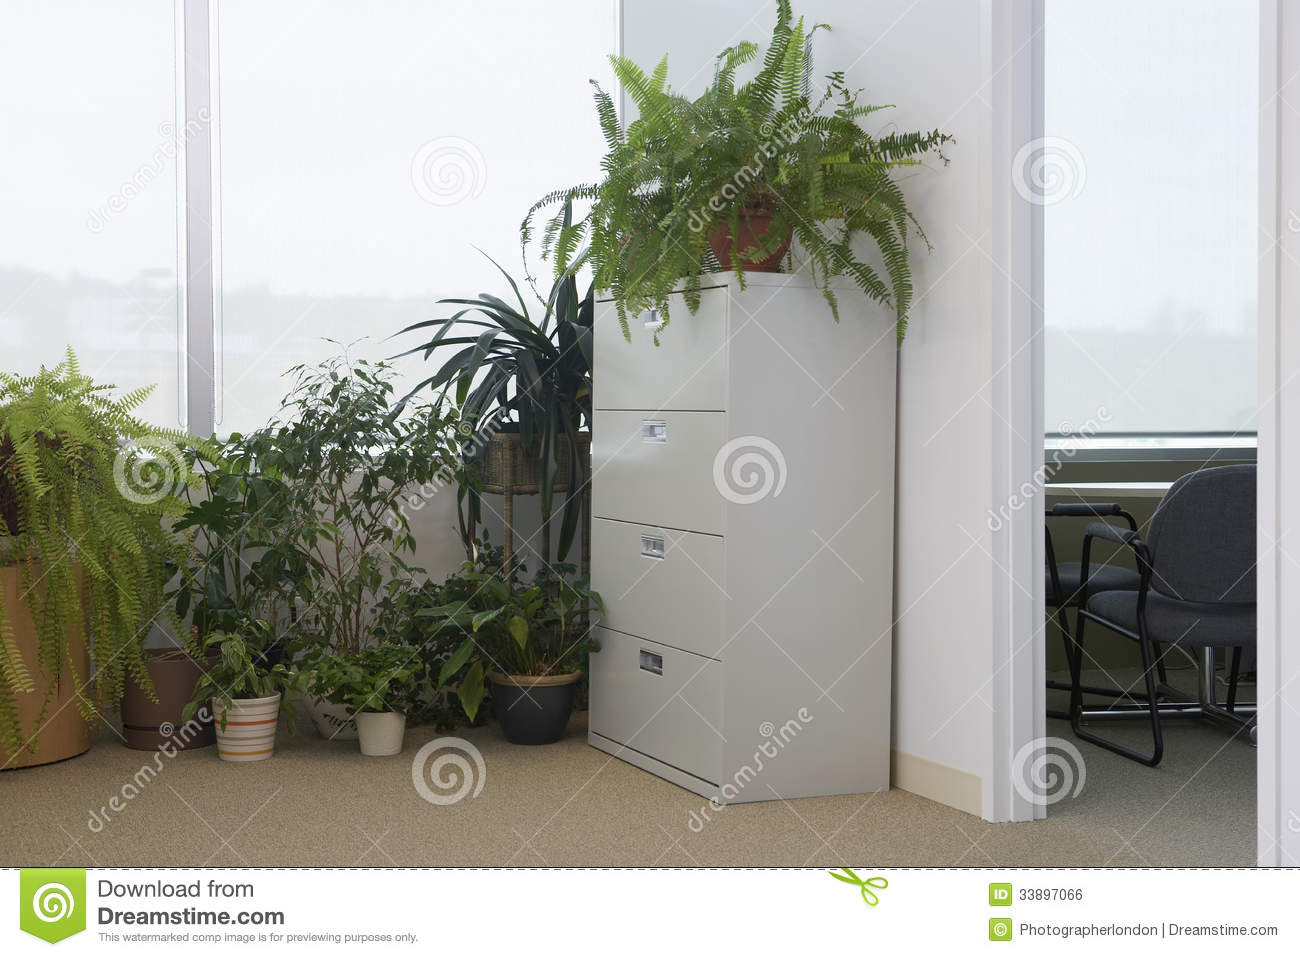 office plants royalty free stock image - image: 20141836